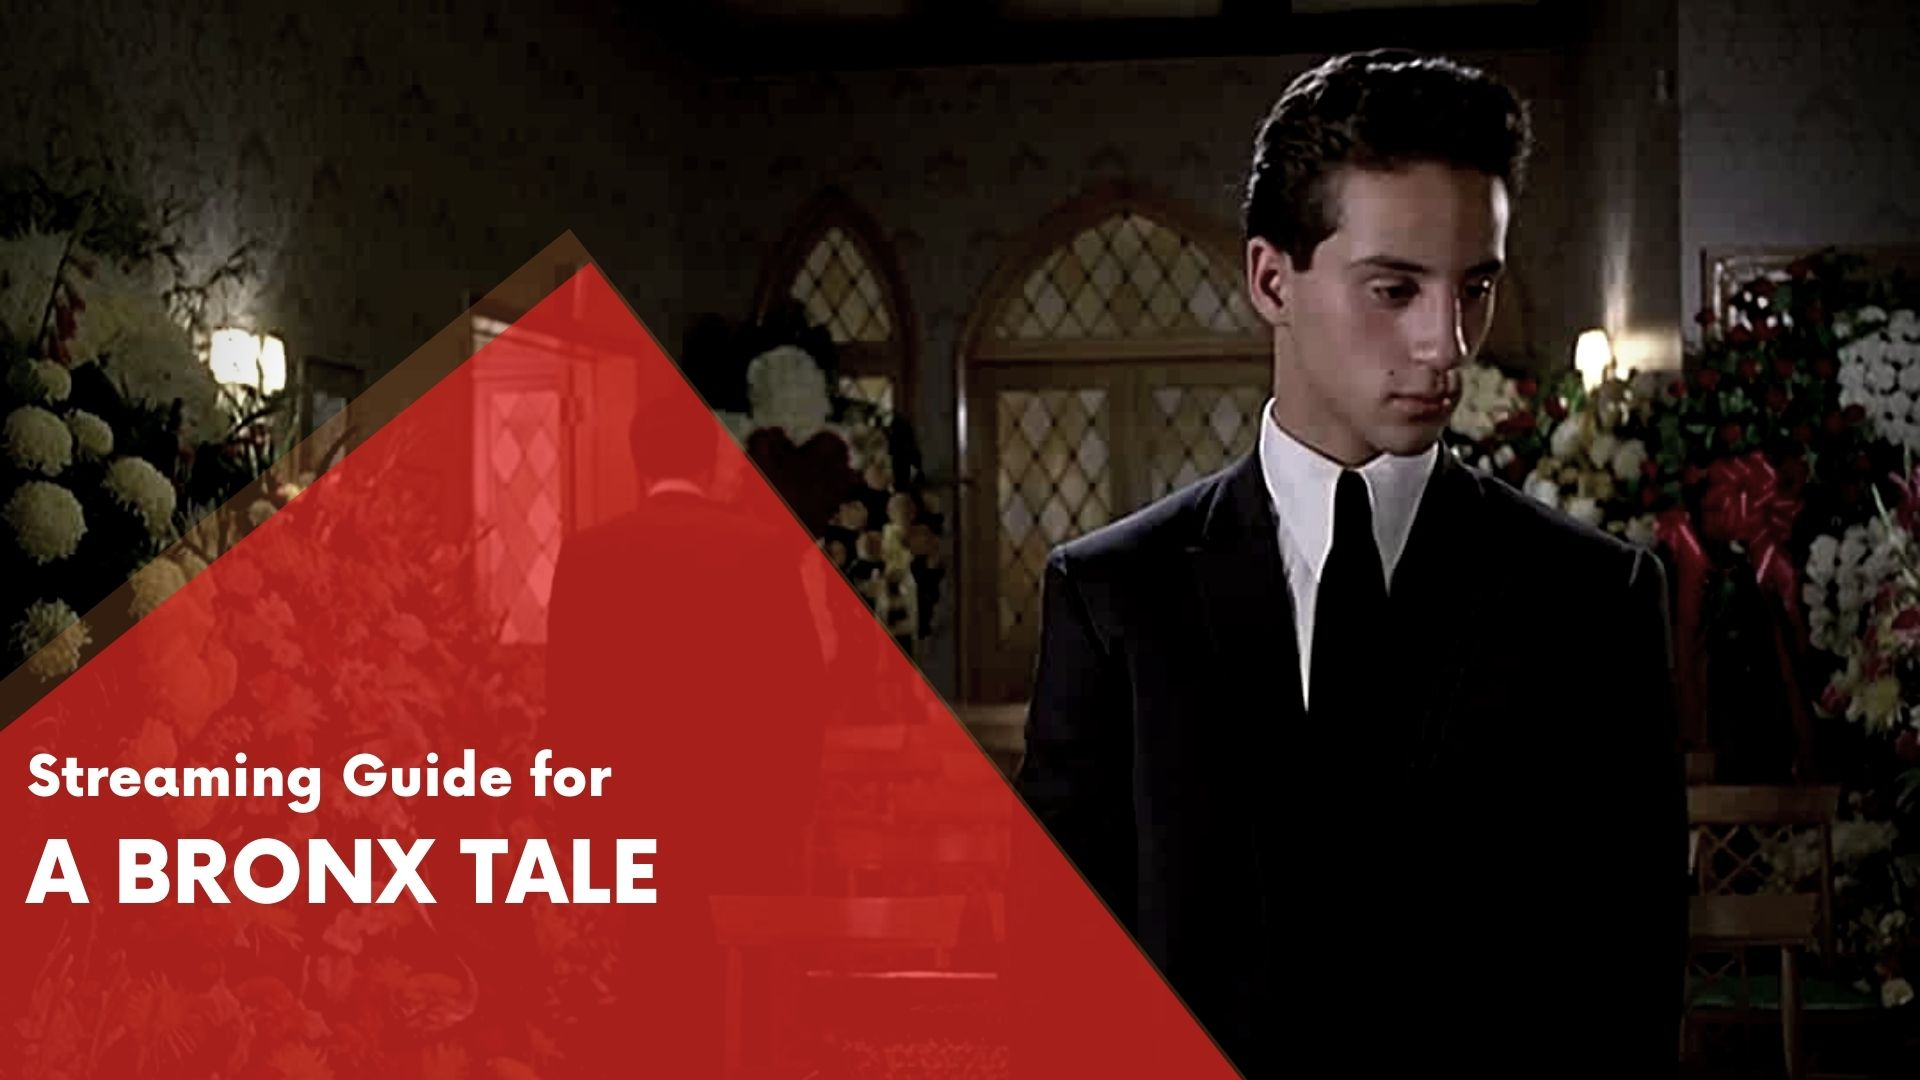 Answering if A Bronx Tale is available on Hulu